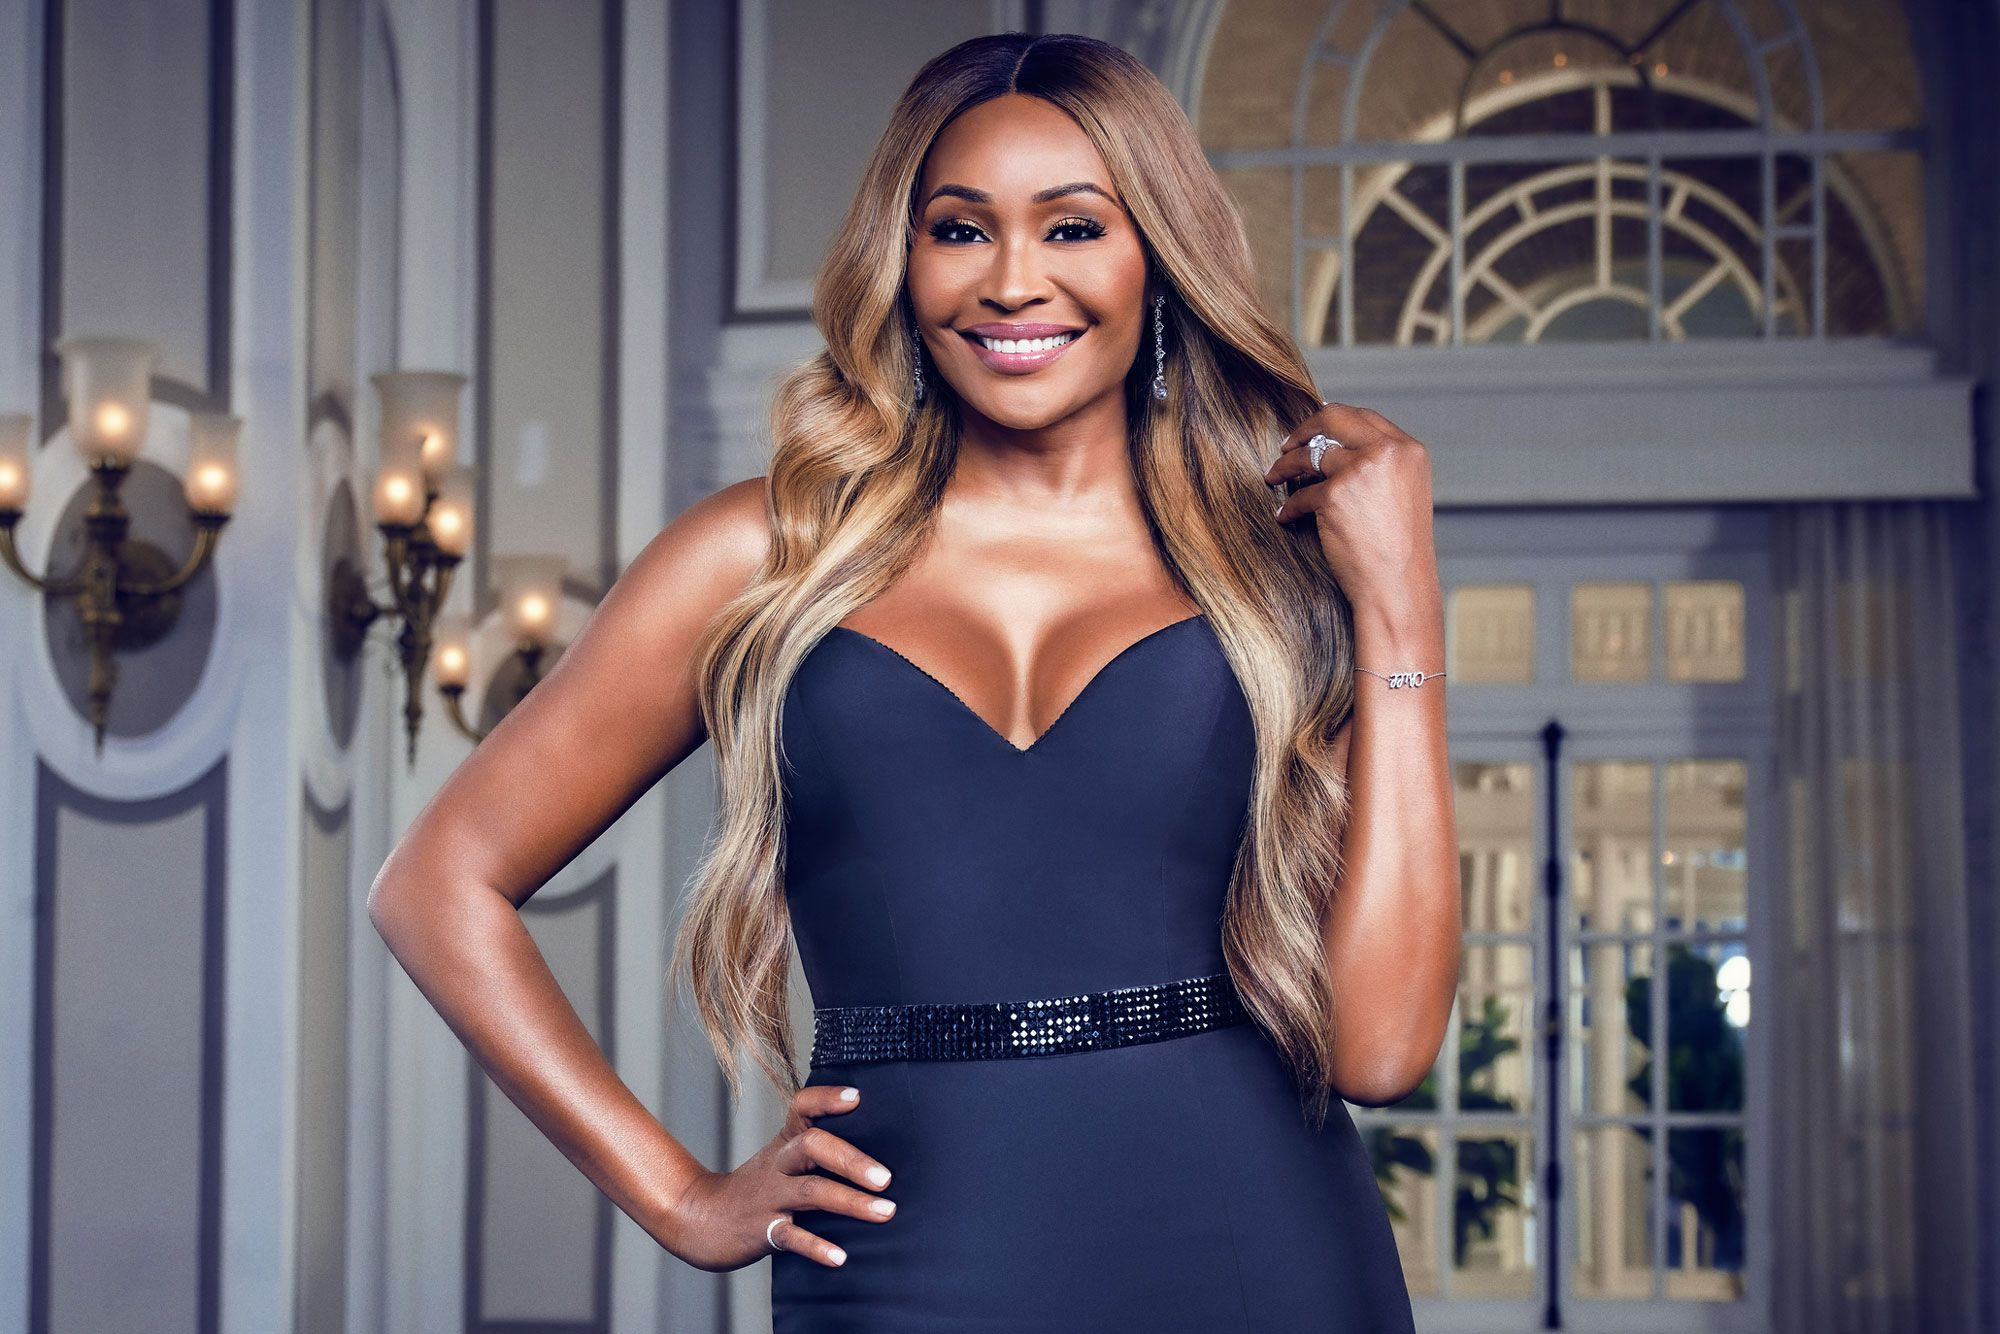 Cynthia Bailey Talks About The Pisces Woman – Check Out What She Had To Say